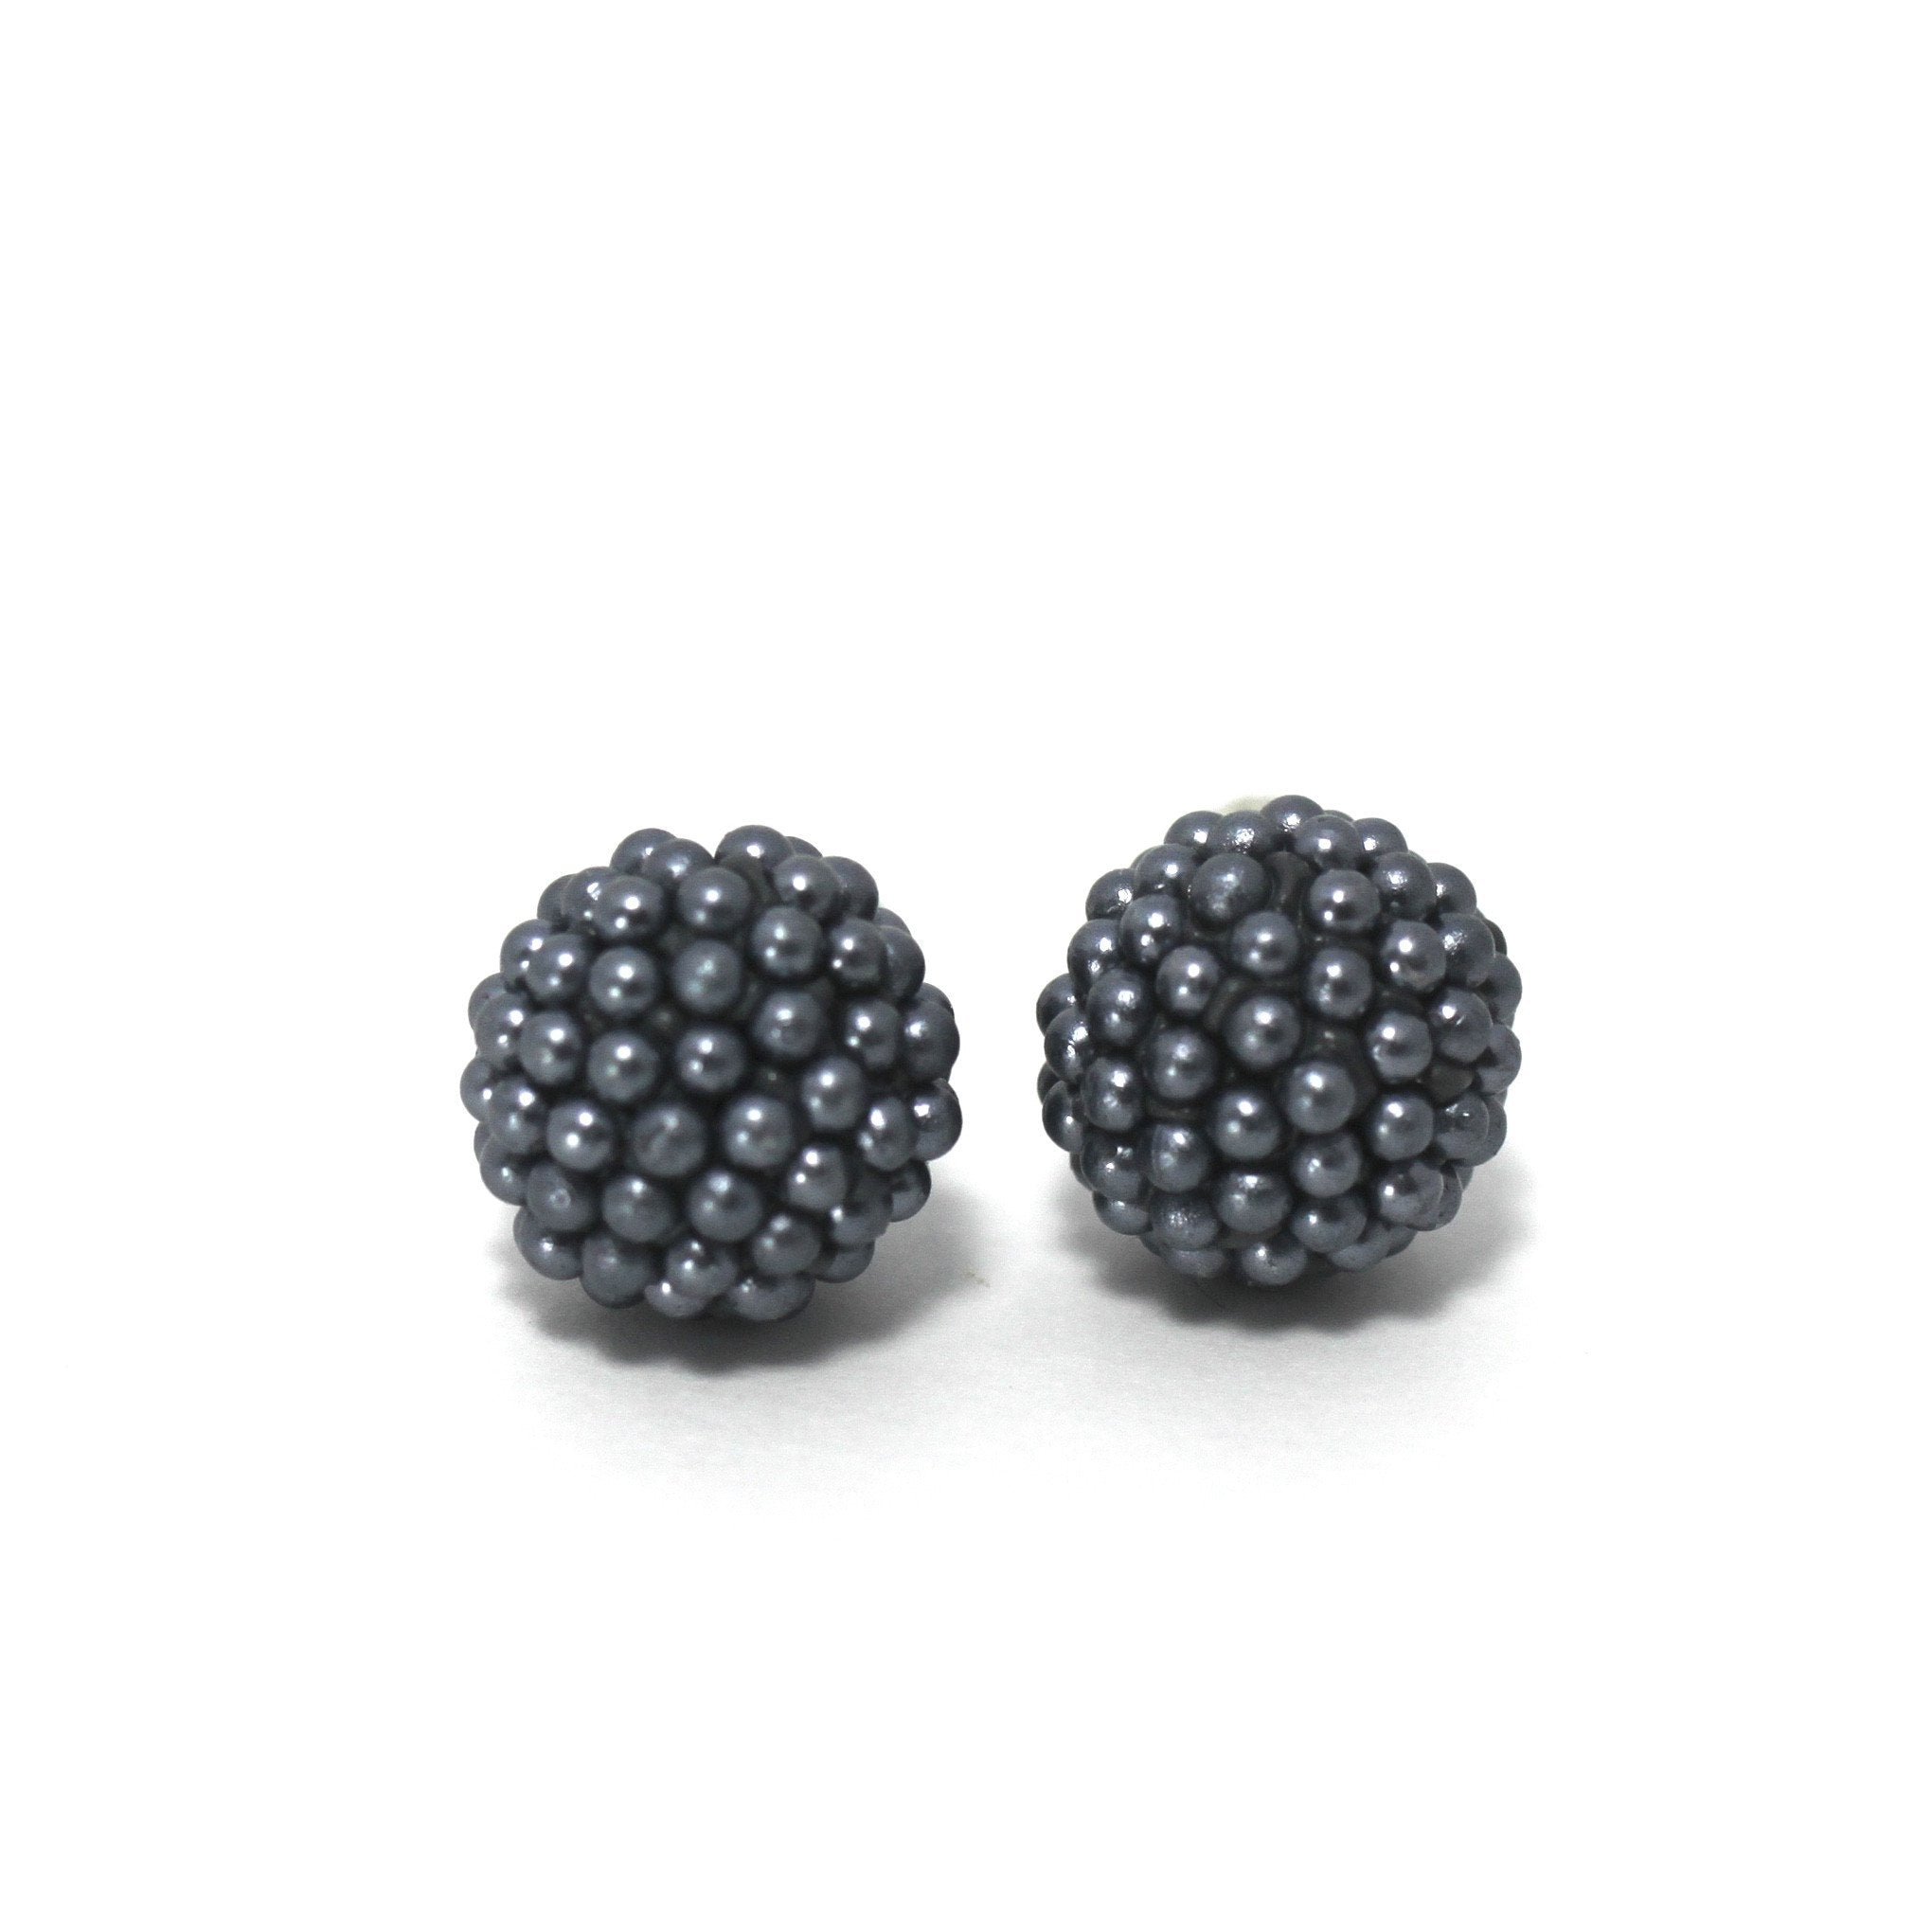 Gray Bead Stud Earrings - The Fashion Foundation